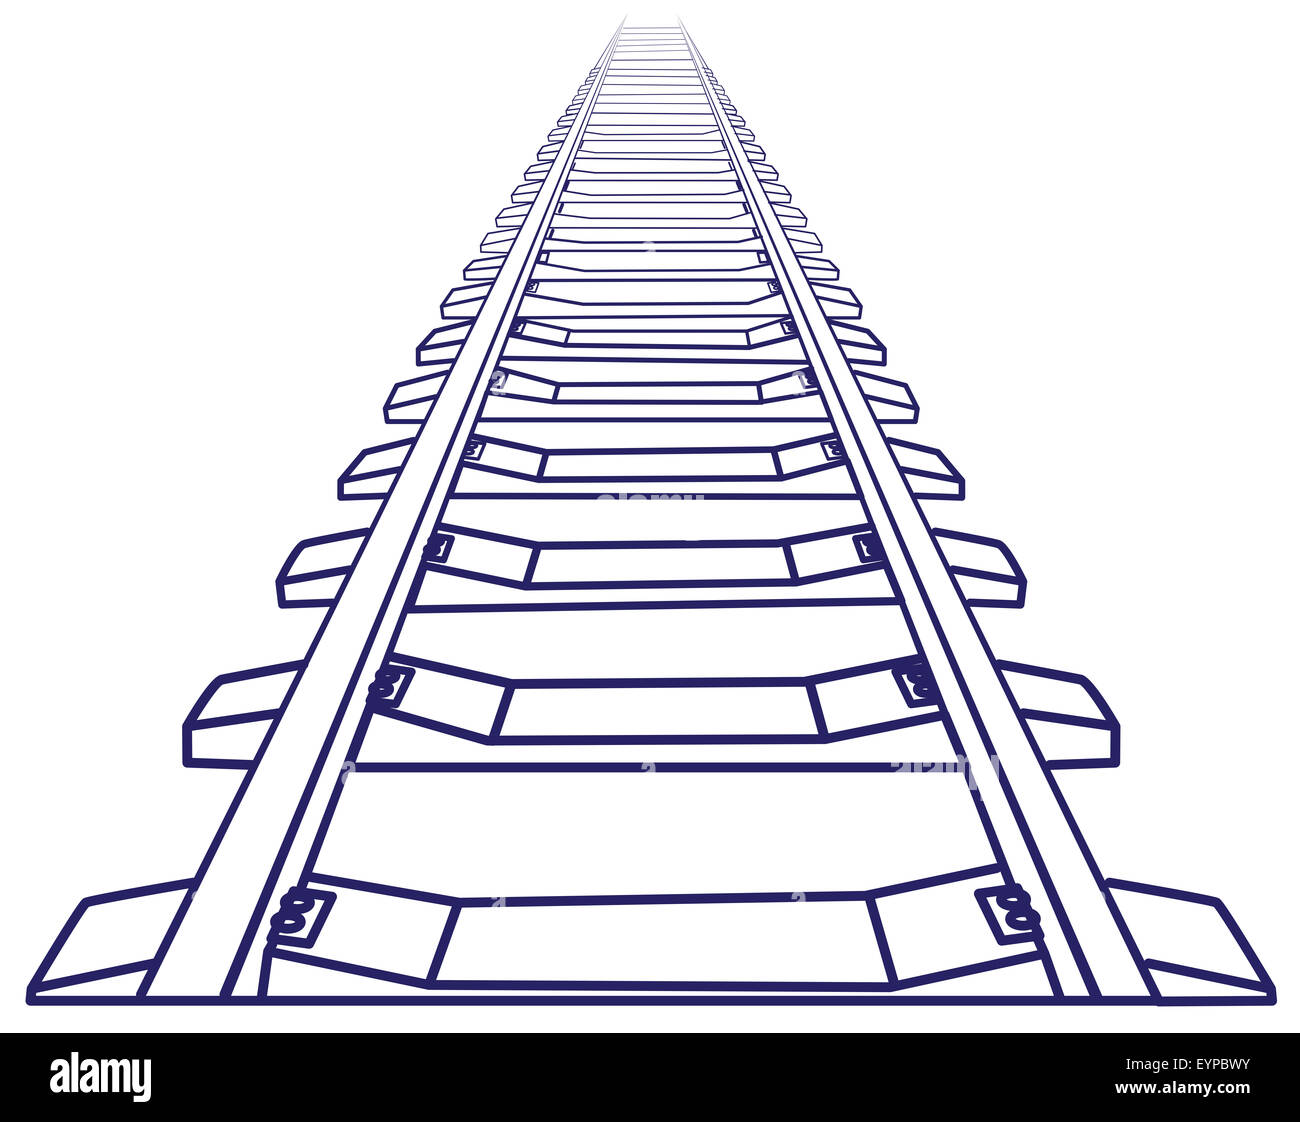 Perspective Drawing Train Stock Photos Amp Perspective